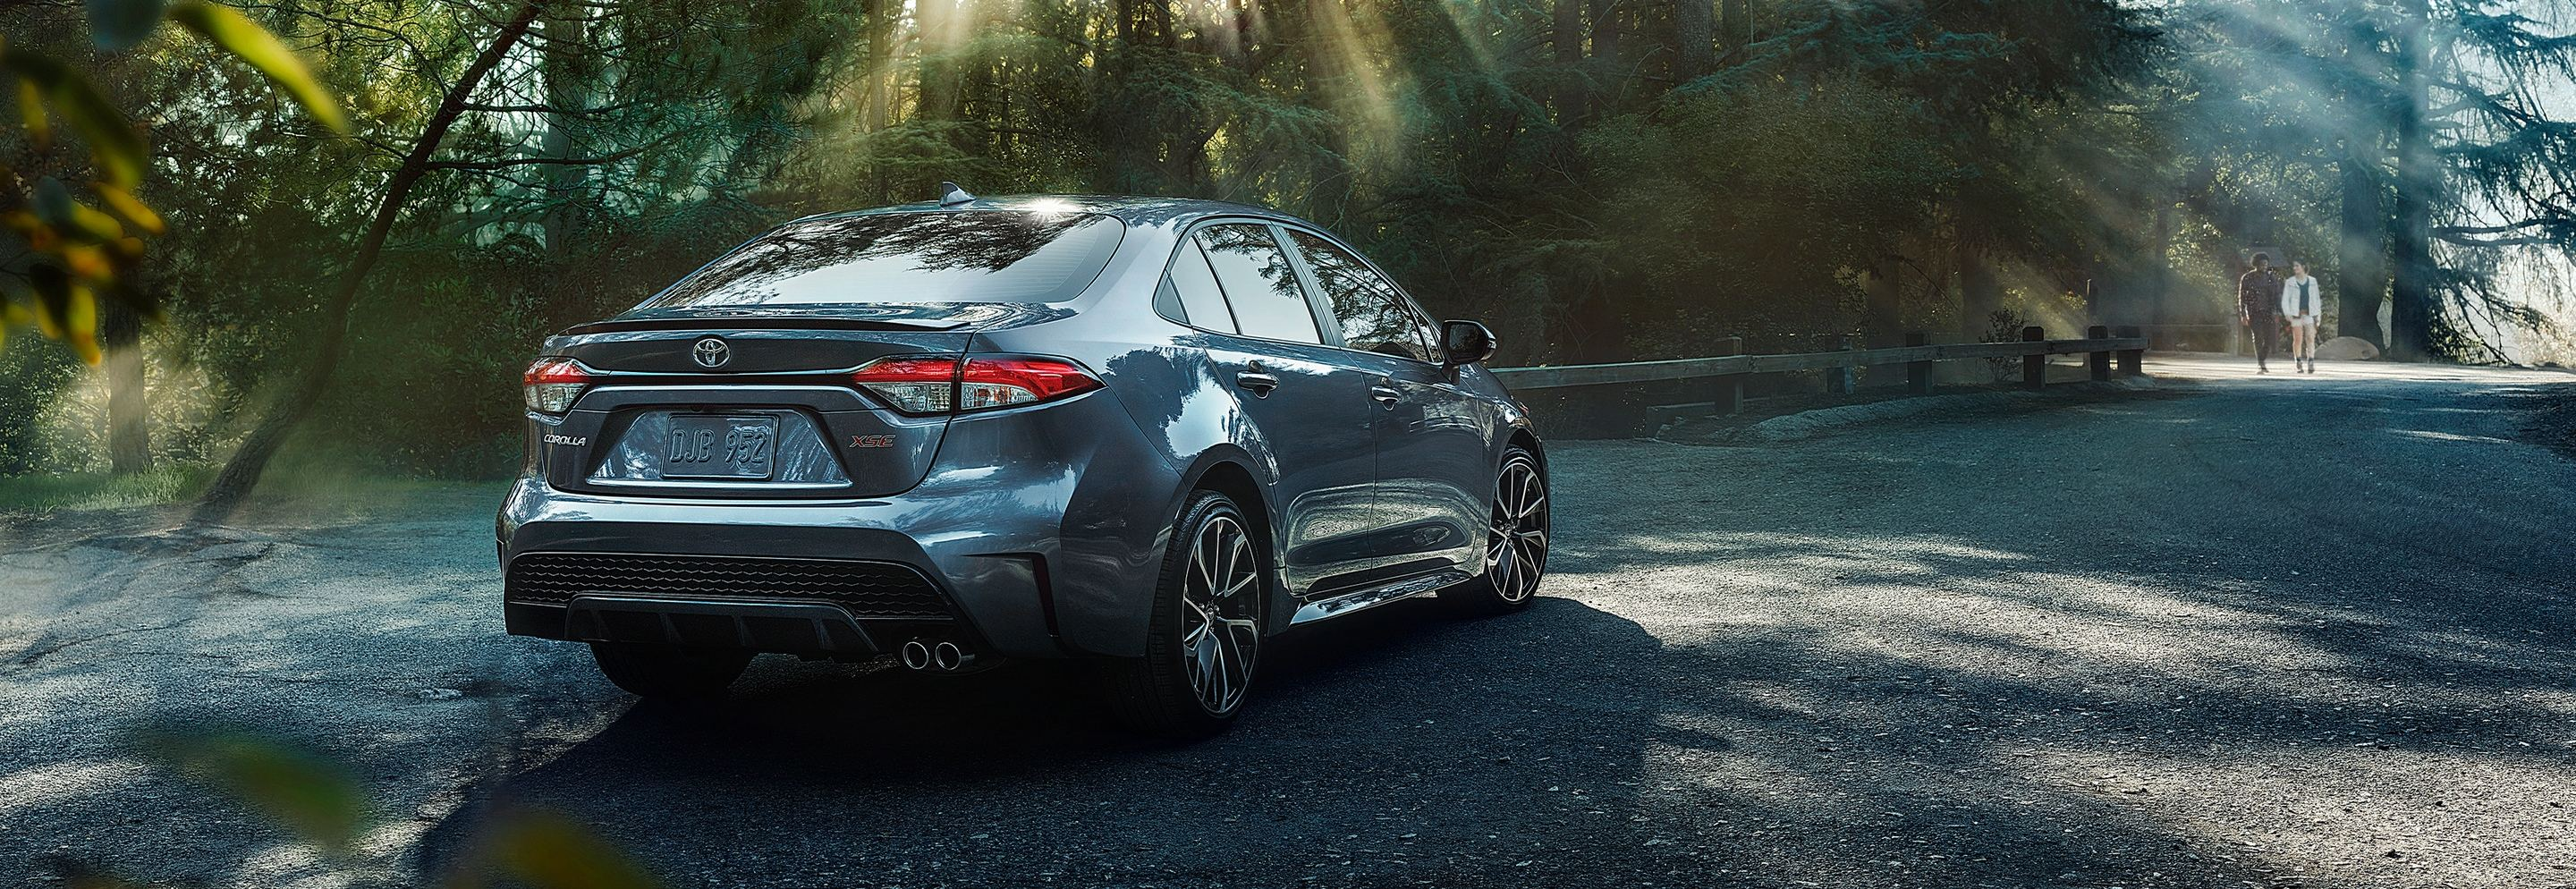 2020 Toyota Corolla Trim Levels in New Castle, DE